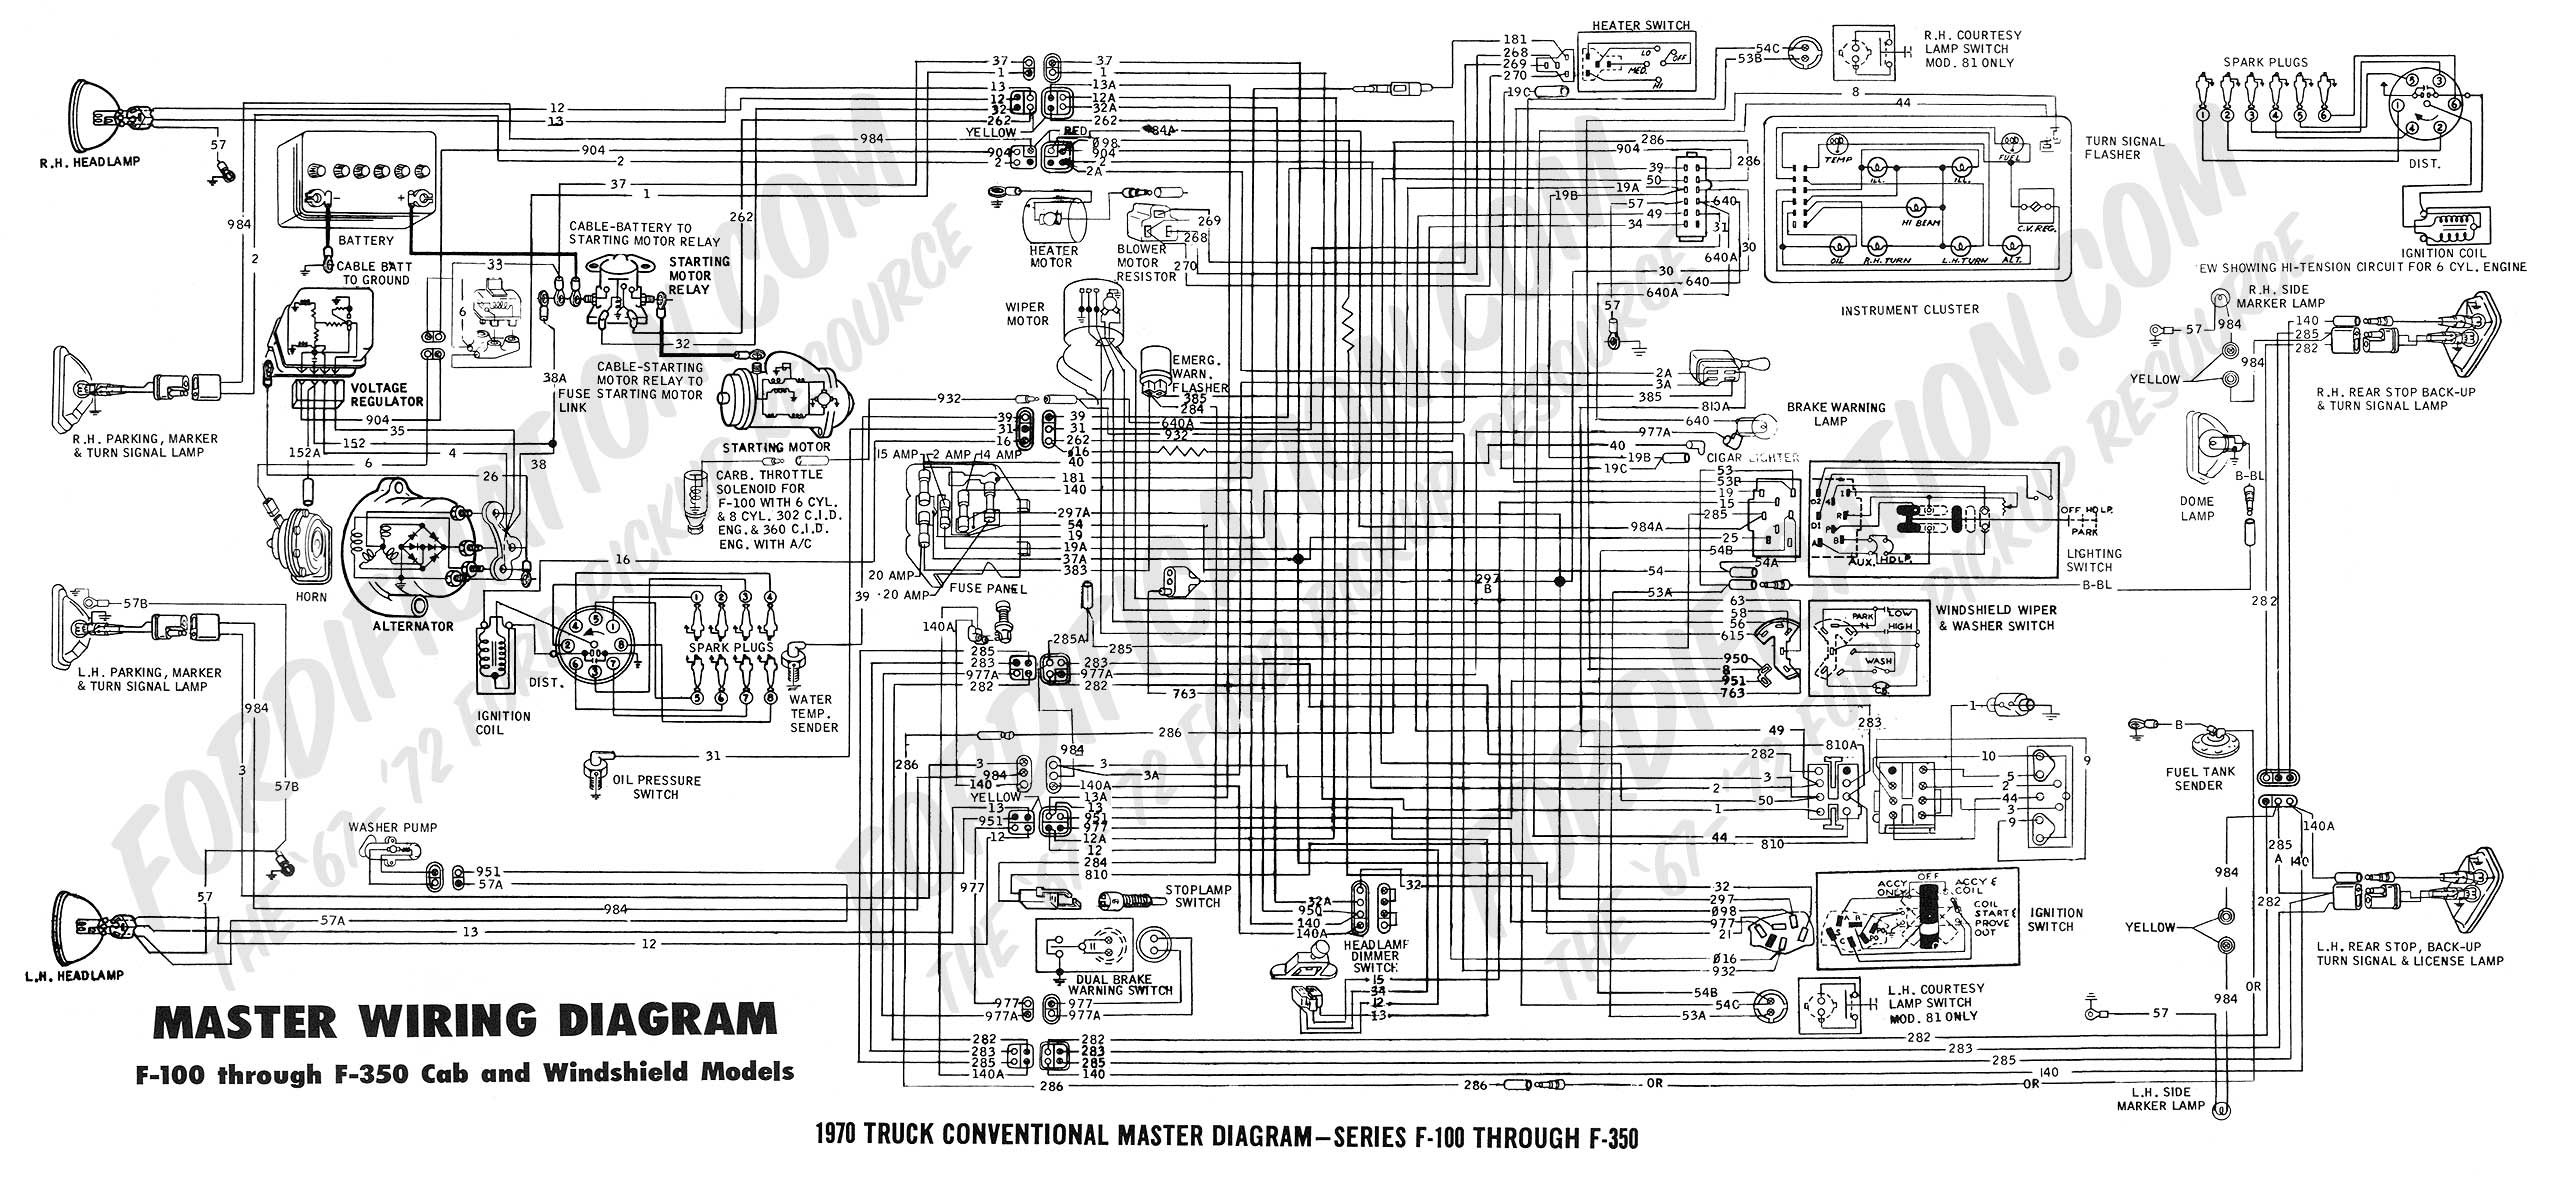 1964 Falcon Wiring Harness Library Toyota Altezza Diagram Ford Truck Technical Drawings And Schematics Section H Rh Fordification Com